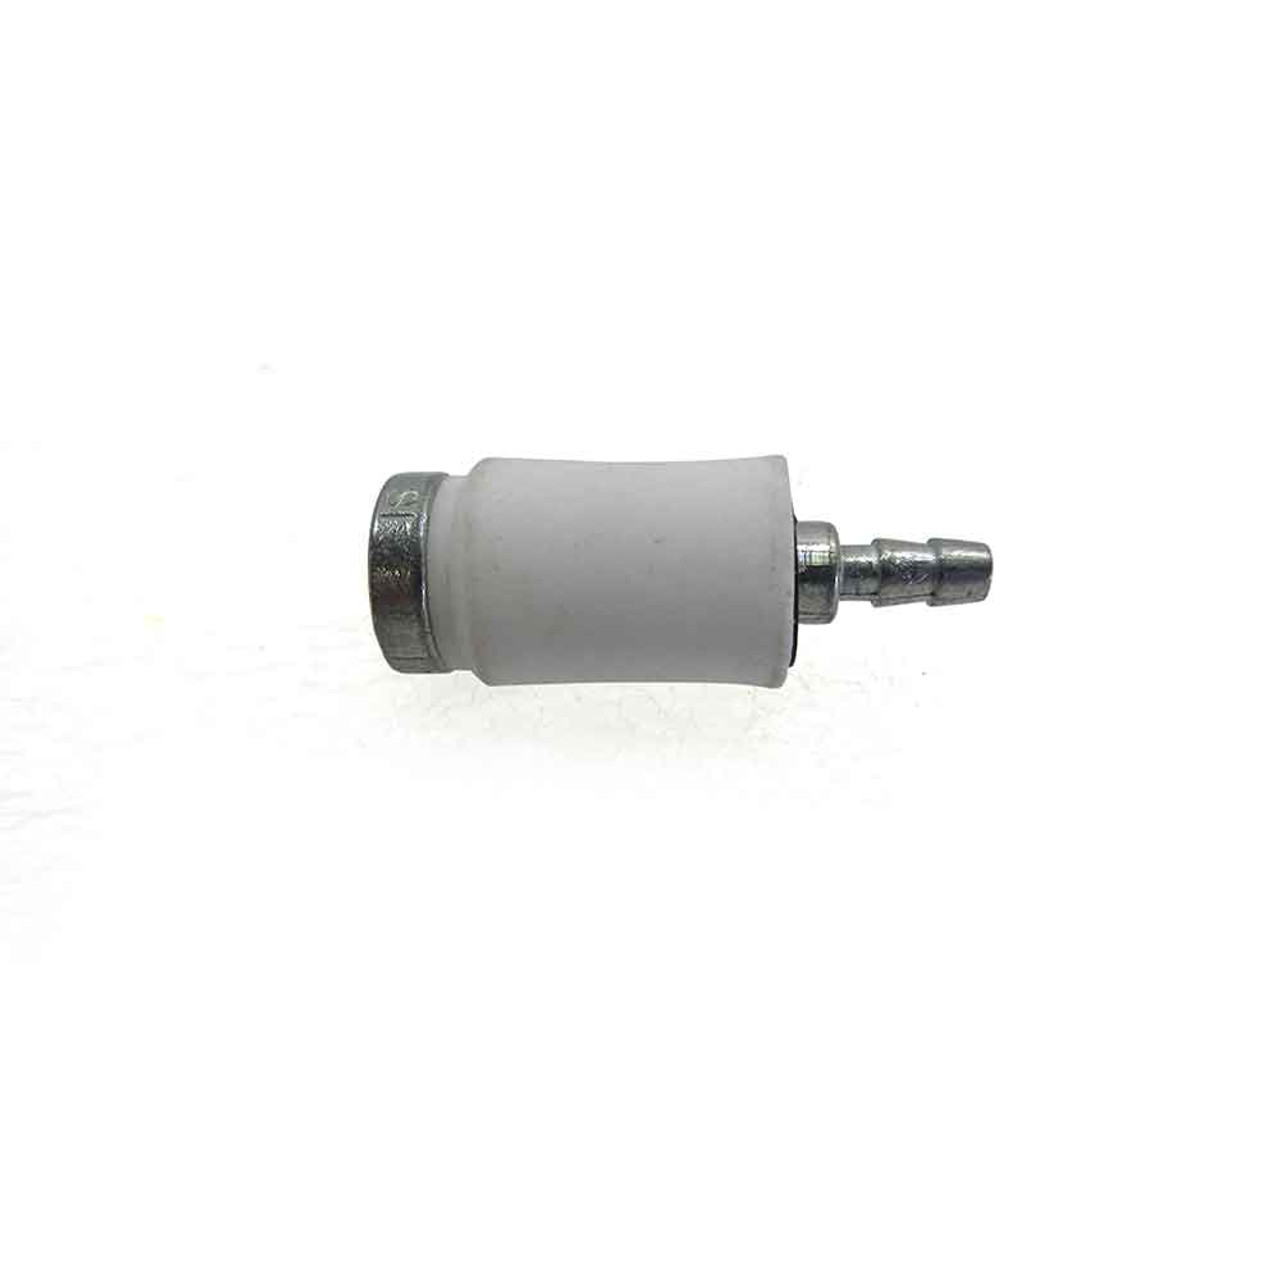 TTi Outdoor Products - Fuel Filter - 300759005